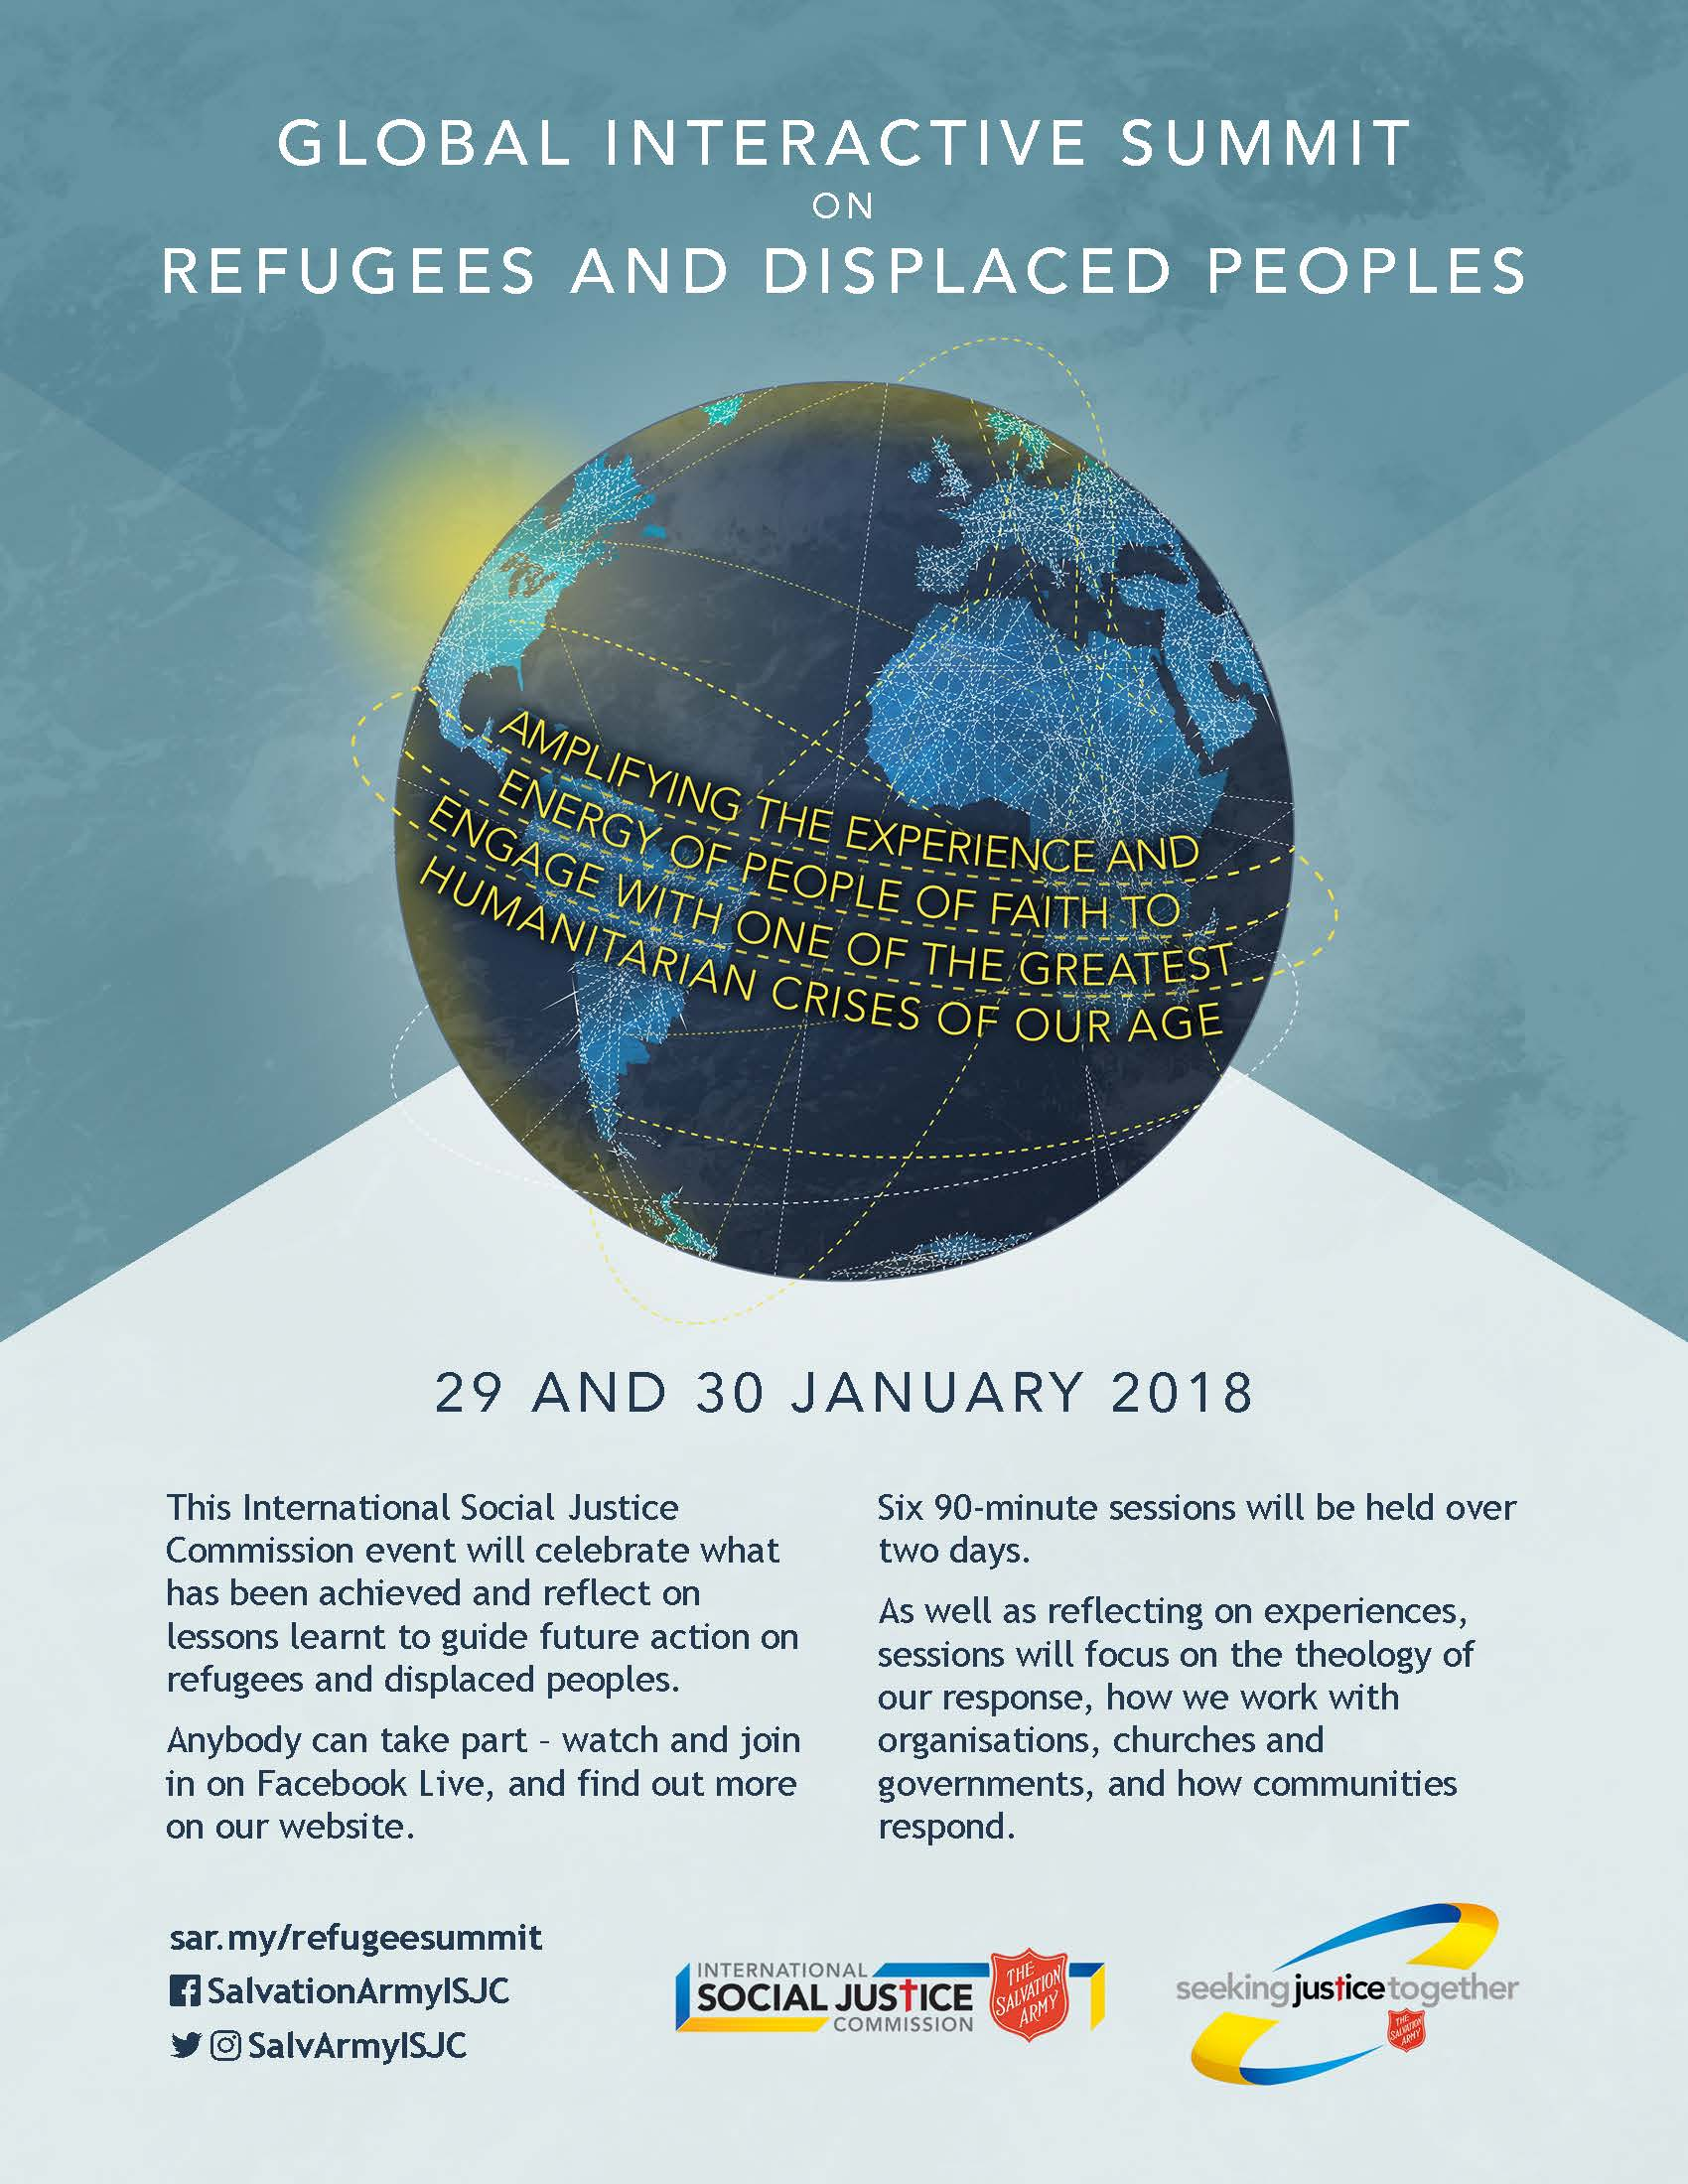 Poster for Global Interactive Summit on Refugees and Displaced Peoples: January 29-30, 2018